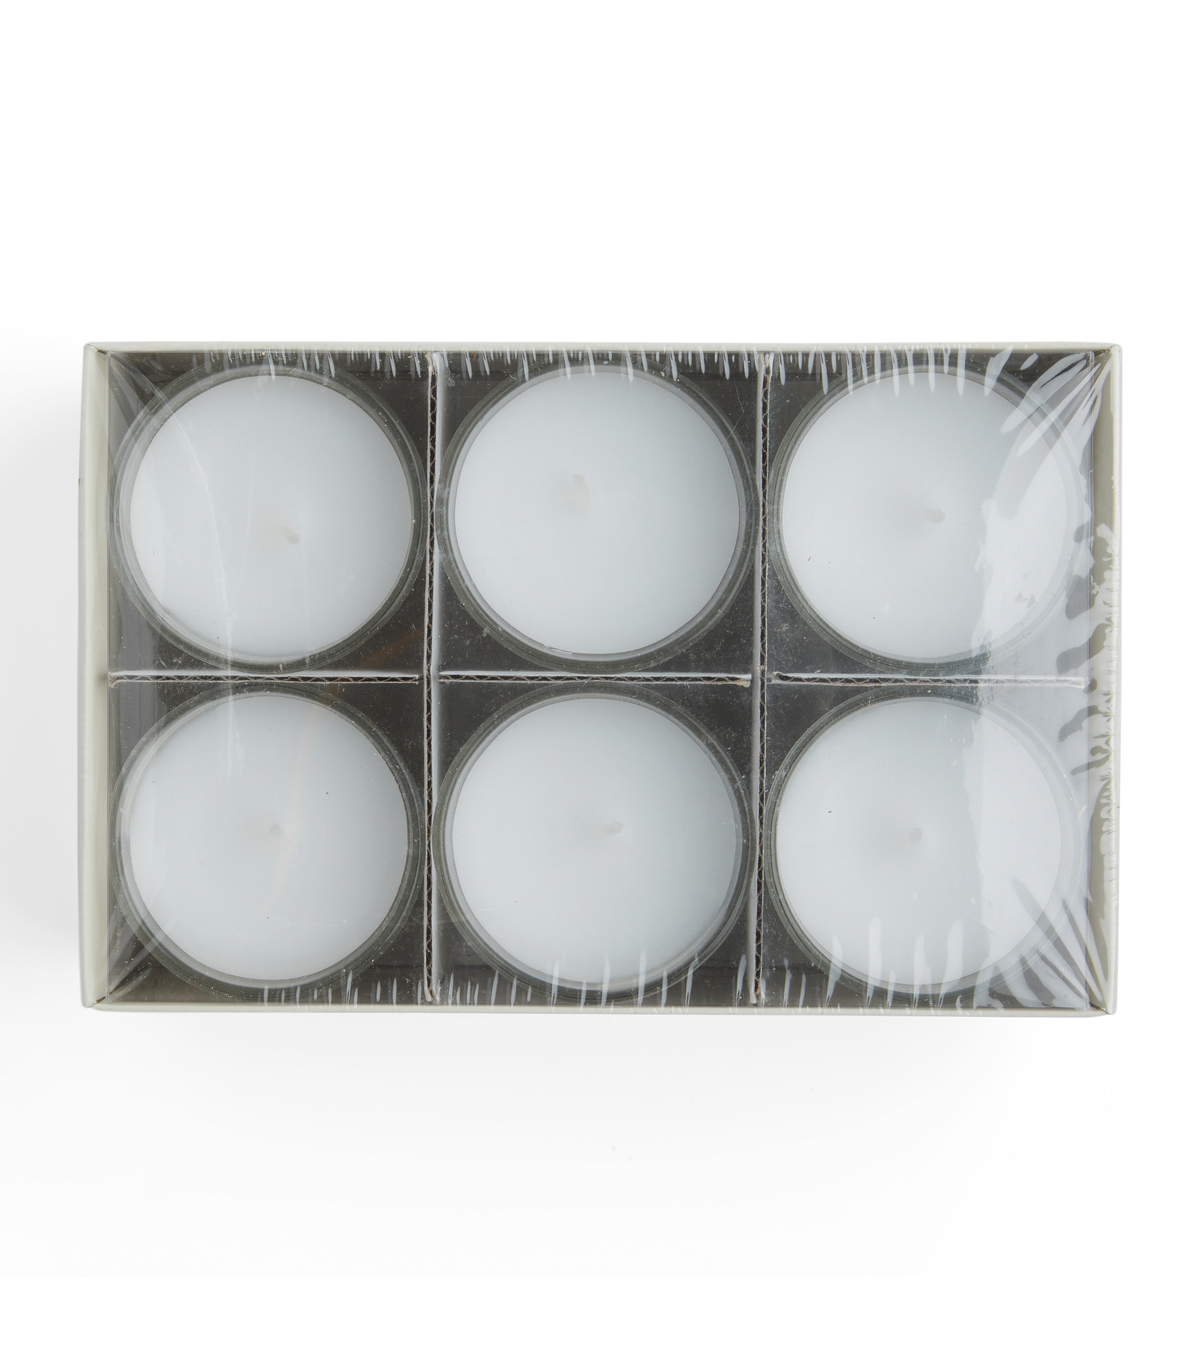 Hudson 43™ Candle & Light Collection 6pk Unscented Glass Accent Candles-White